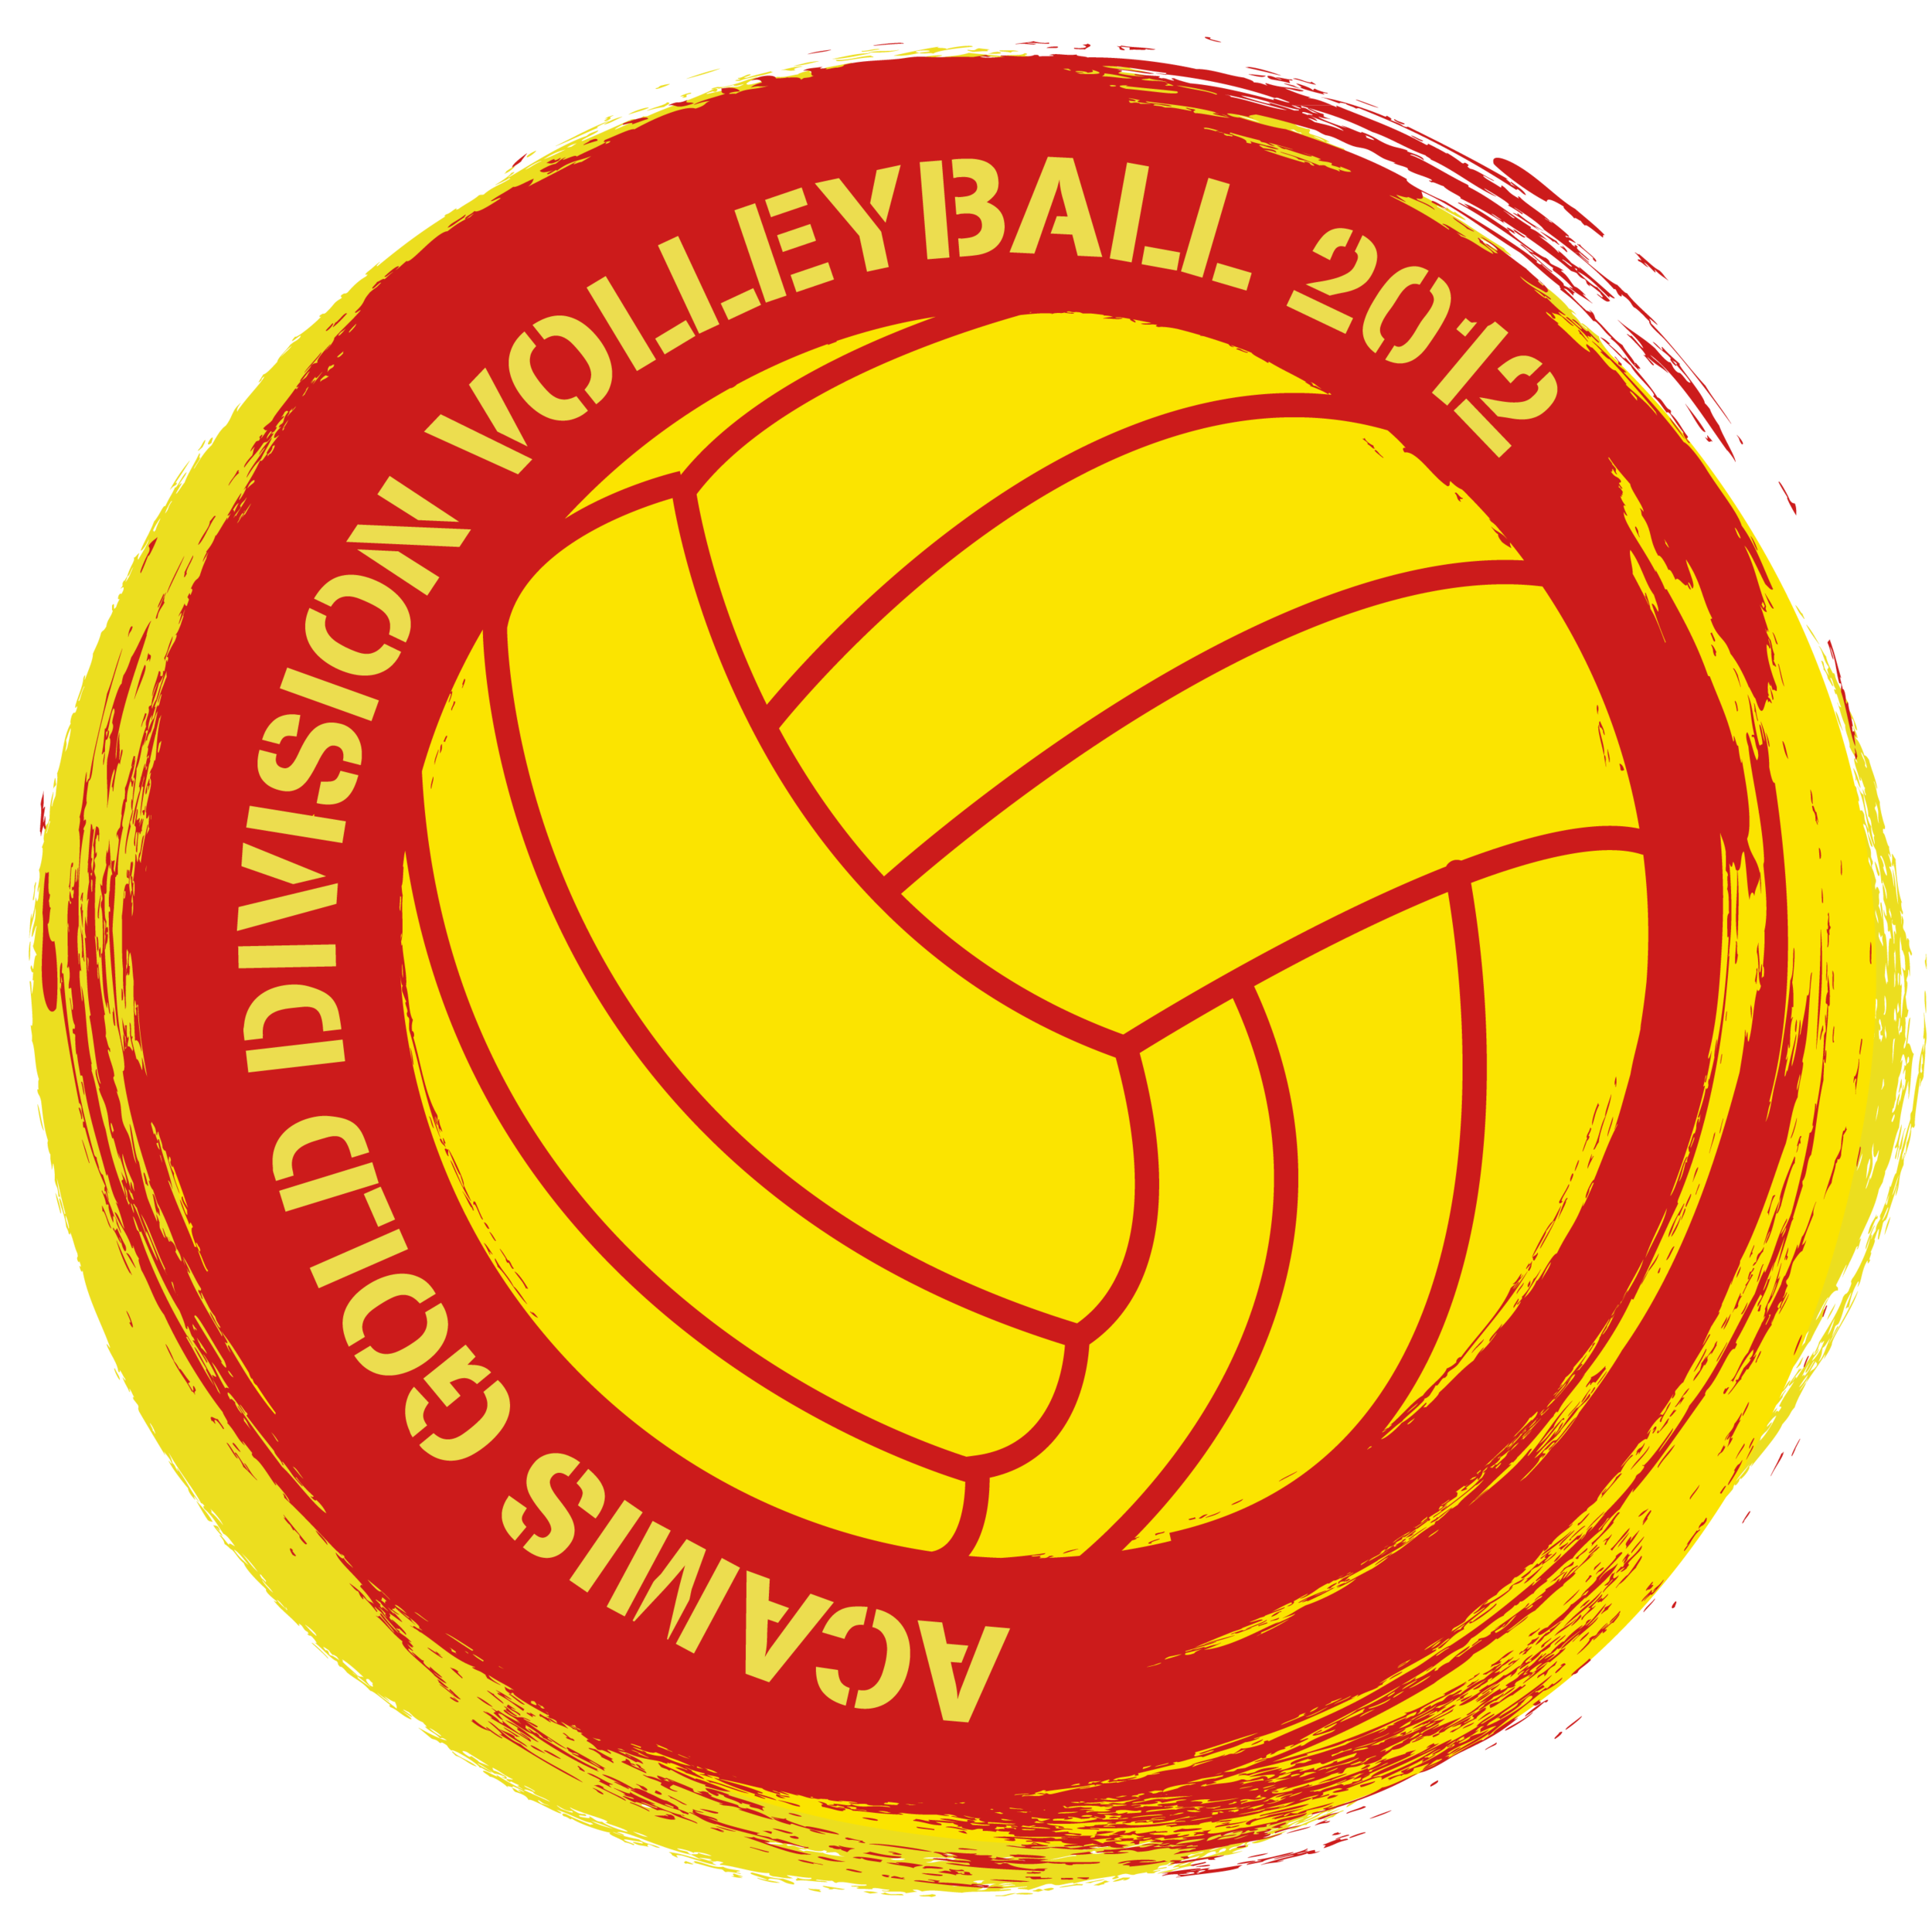 Logo Design- ACAMIS Gold Division Volleyball. 2012.